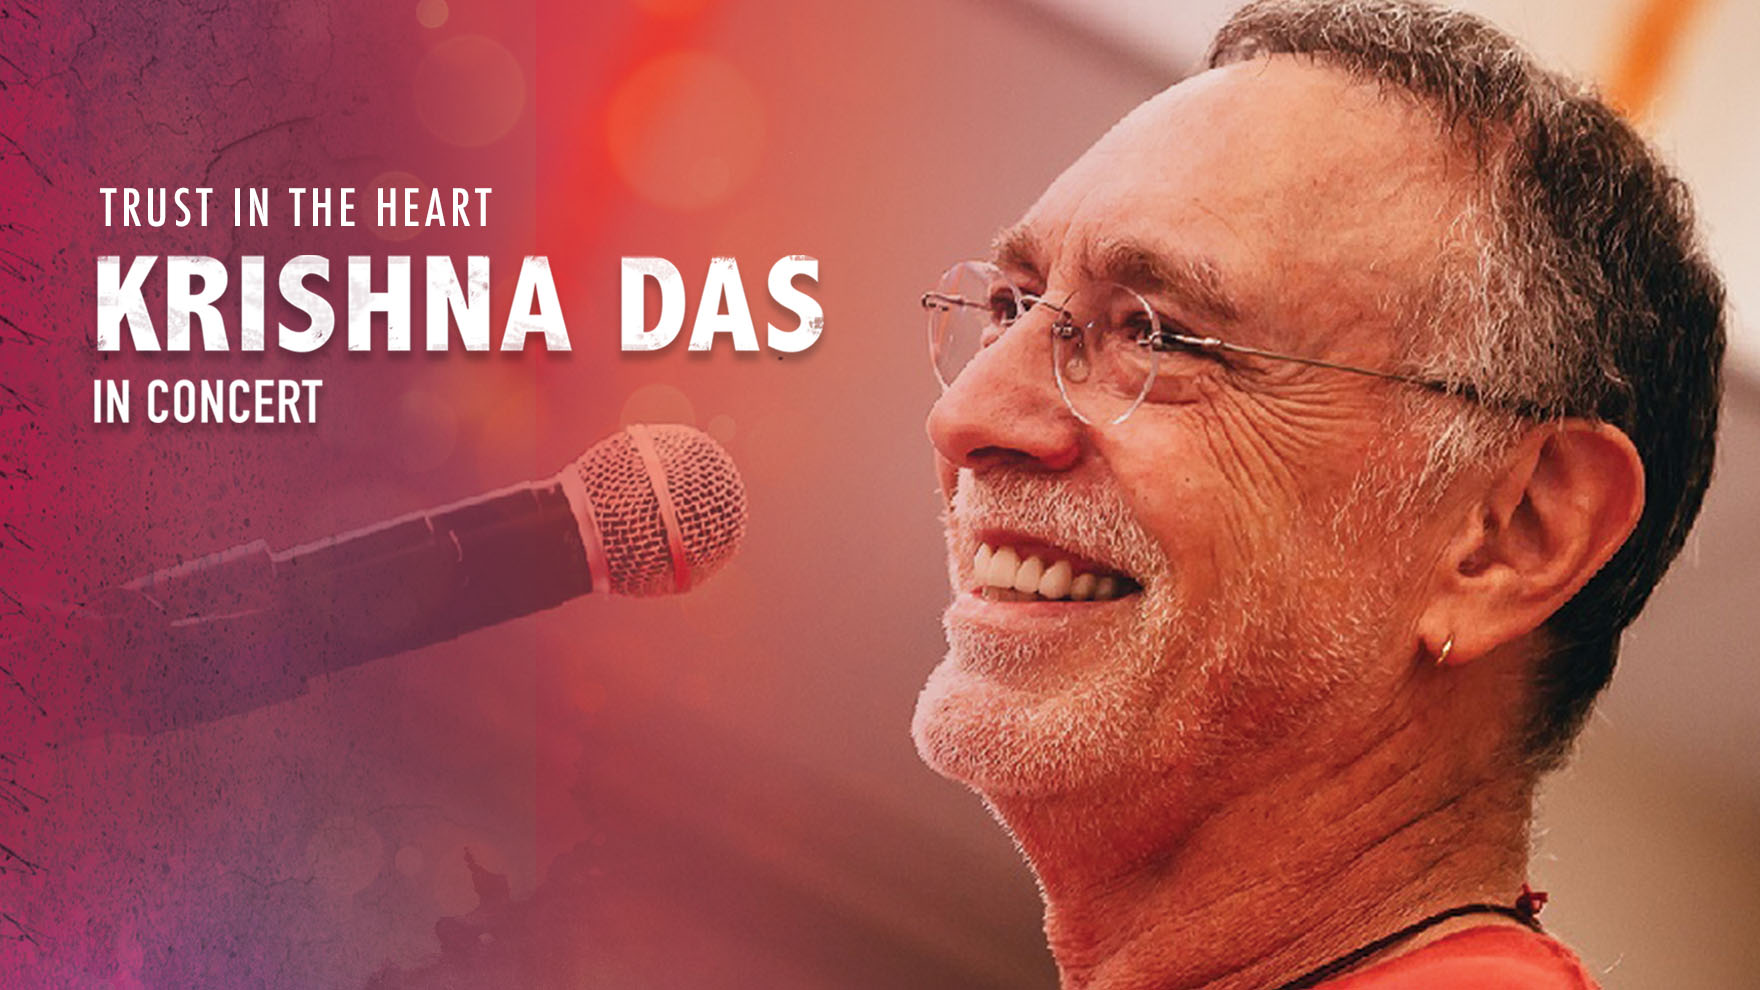 Tickets for Krishna Das: Trust in the Heart Concert (Sarasota) in Sarasota from BrightStar Live Events